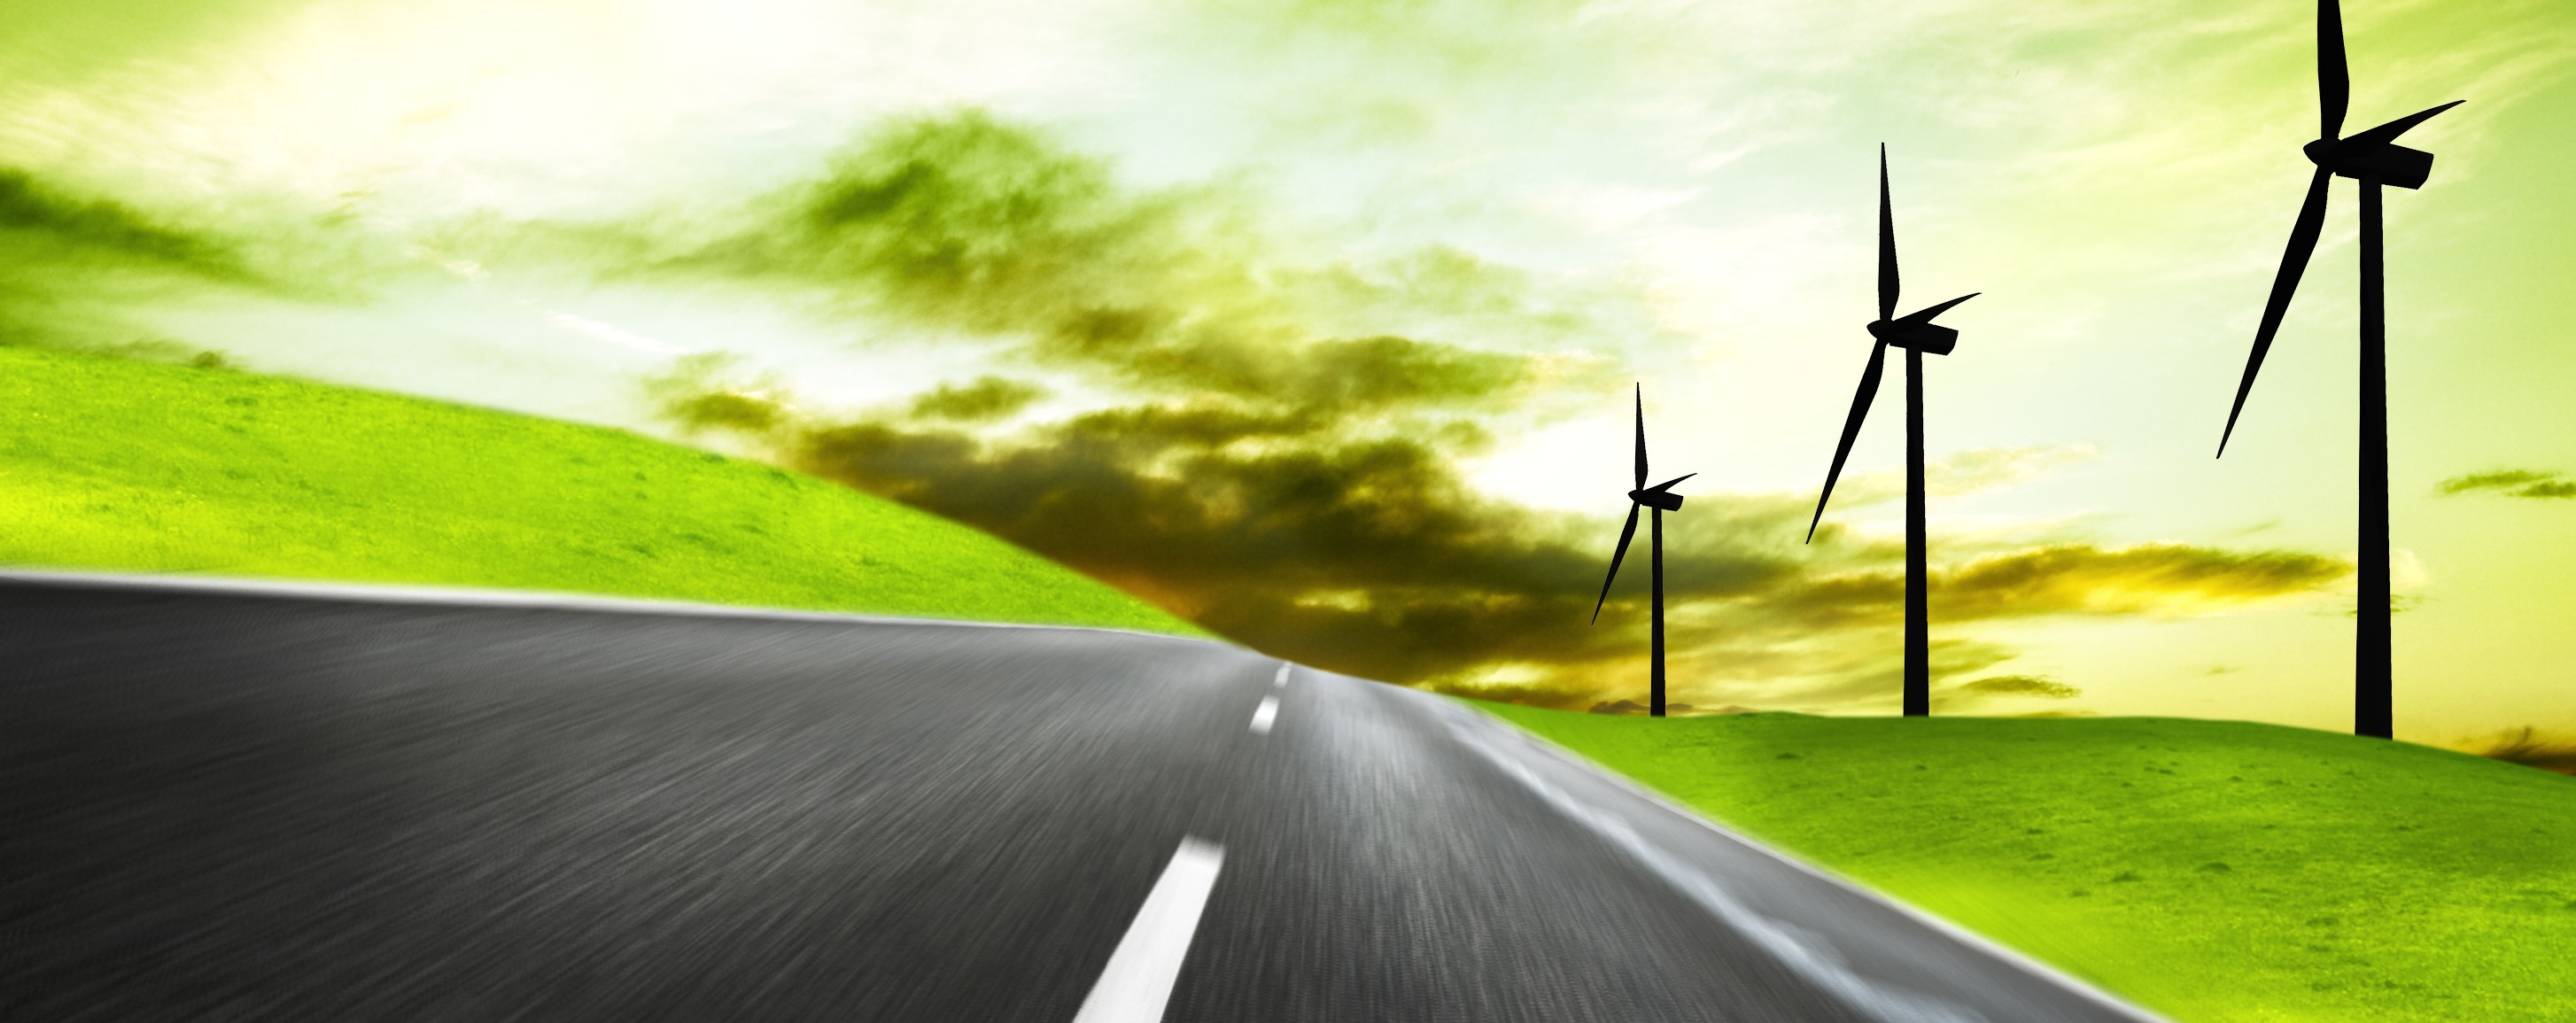 Futuristic picture depicting a road winding the countryside with wind turbines and a green sky